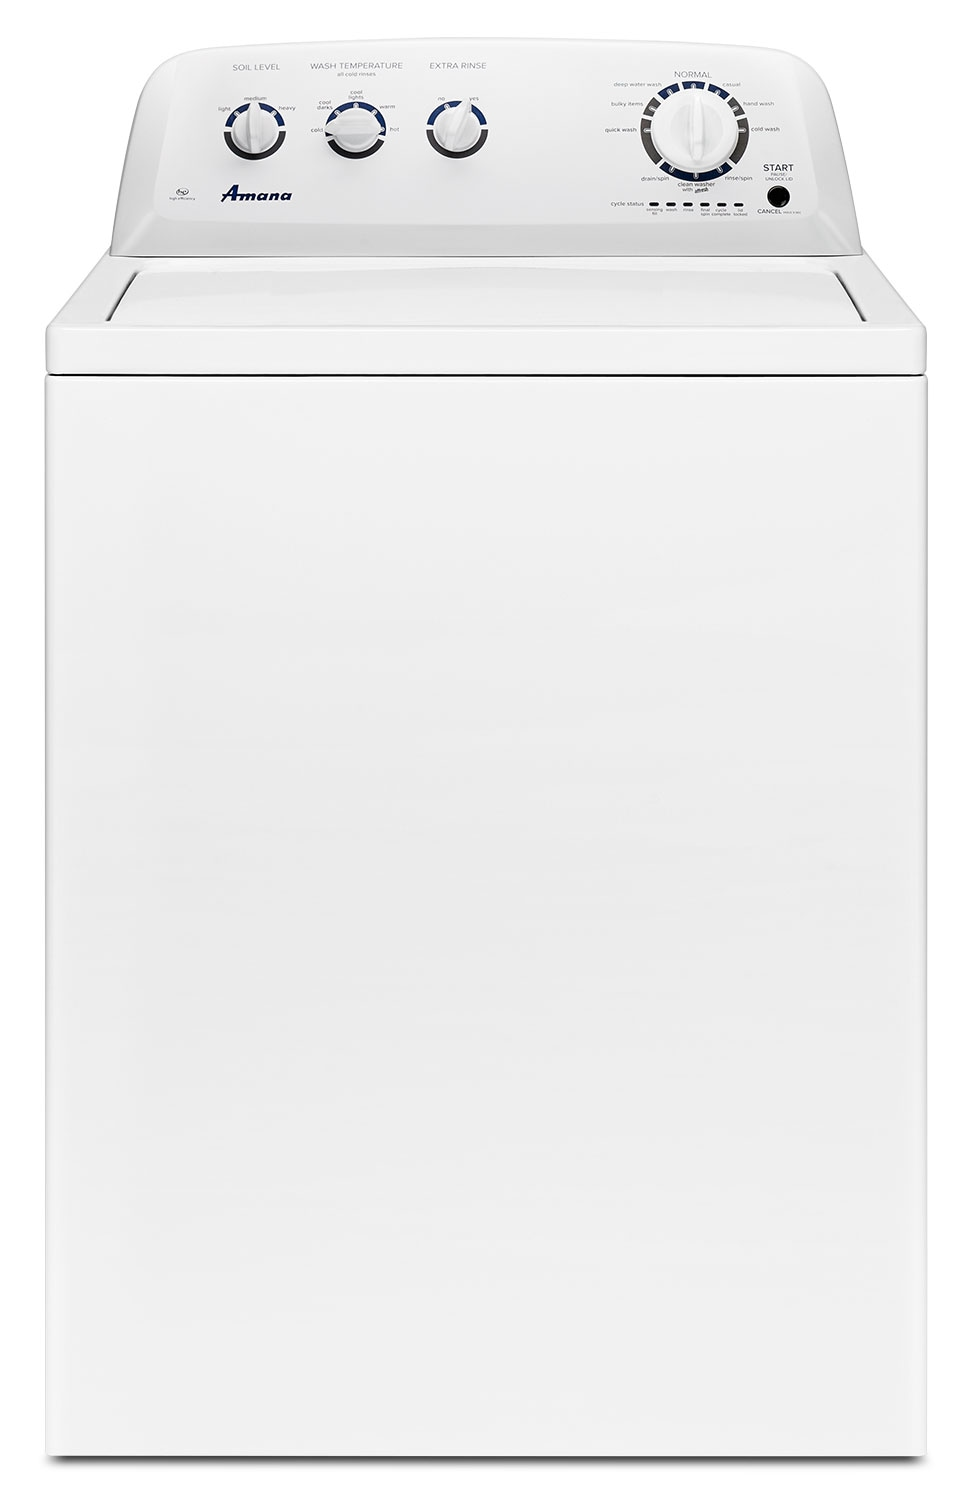 Amana White Top-Load Washer (4.2 Cu. Ft. IEC) - NTW4755EW